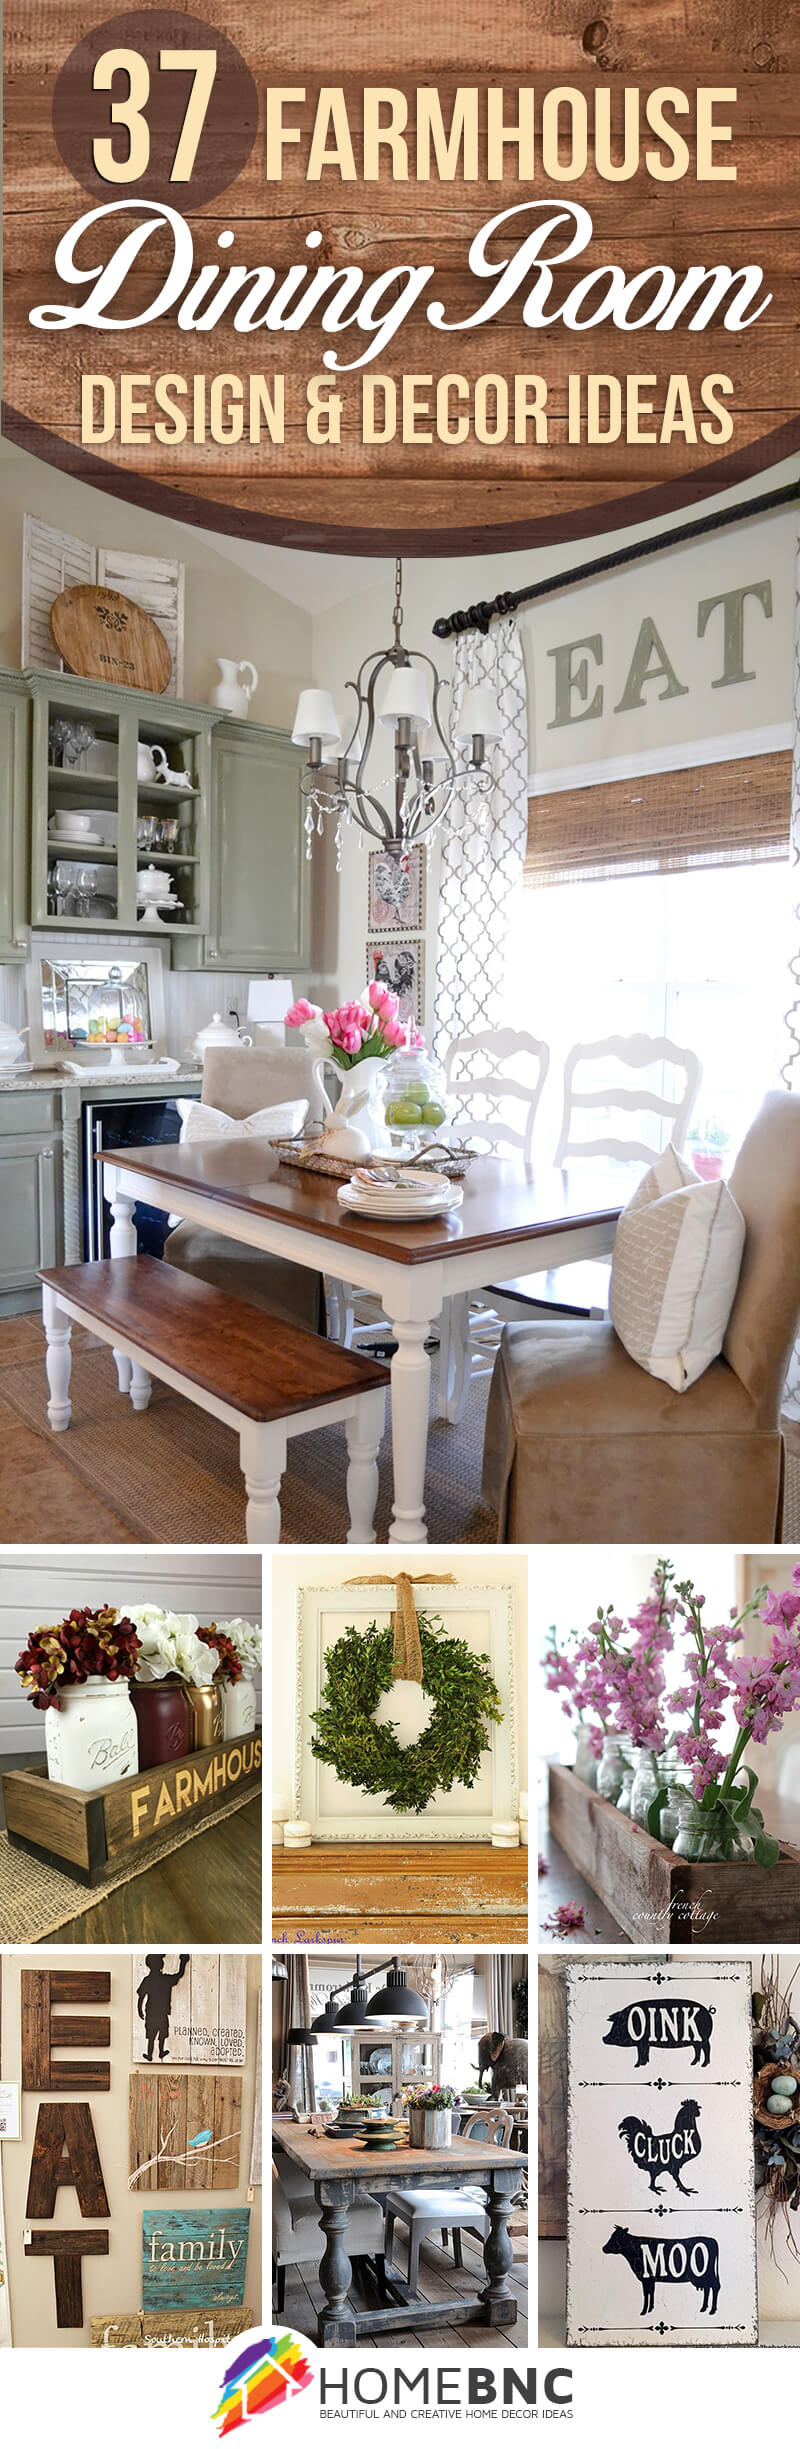 37 Best Farmhouse Dining Room Design And Decor Ideas For 2019 Throughout Casual Country Eat Here Retro Wall Decor (View 8 of 30)